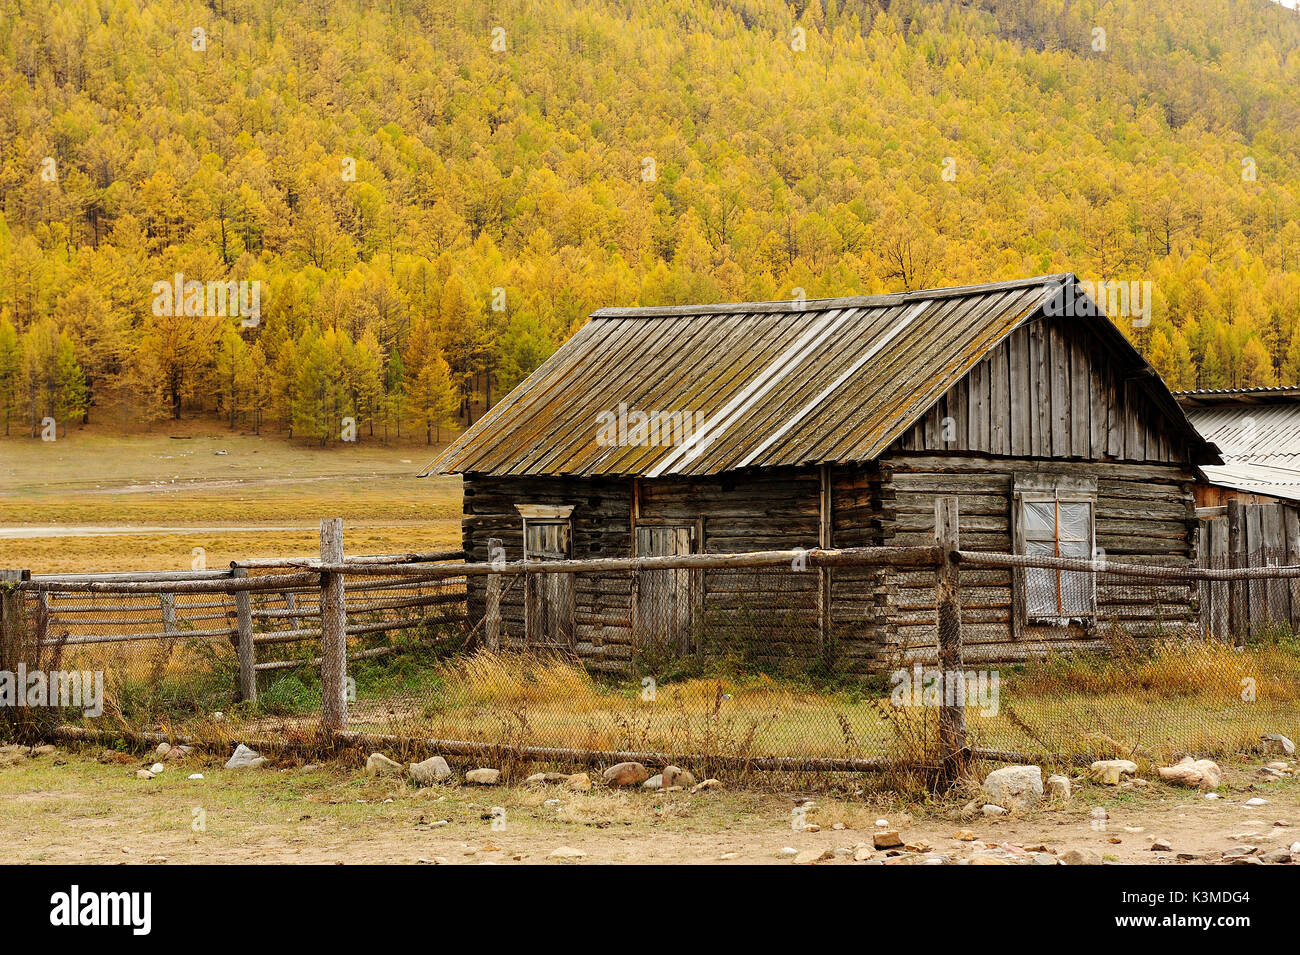 Siberian wooden houses in olkhon island, Siberia, Russia. - Stock Image